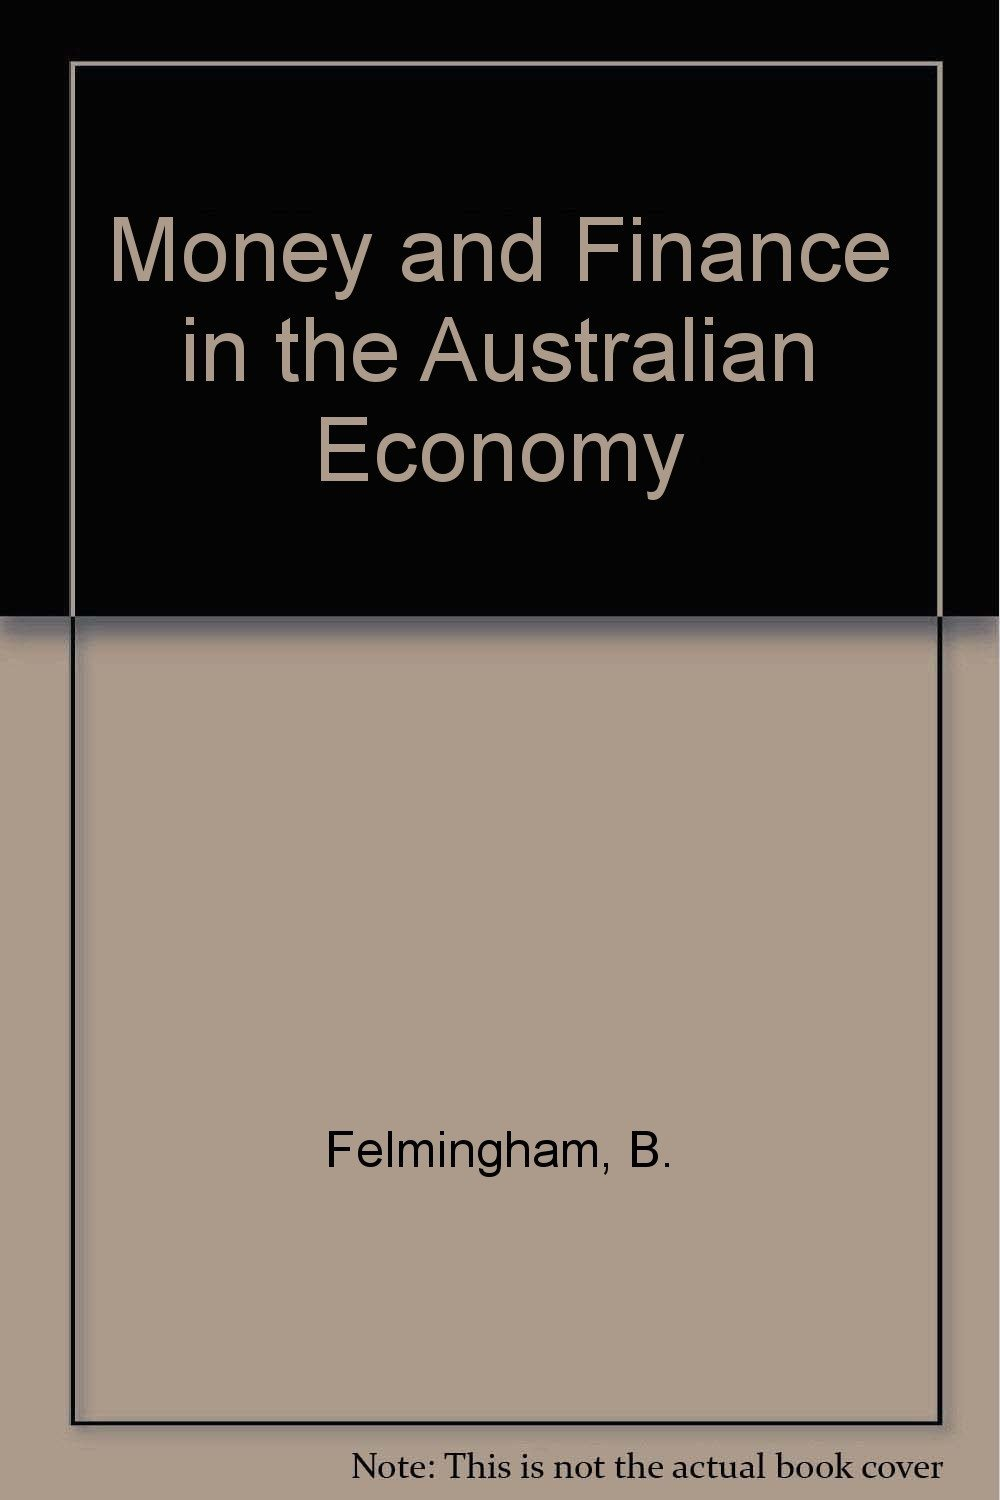 Money and Finance in the Australian Economy